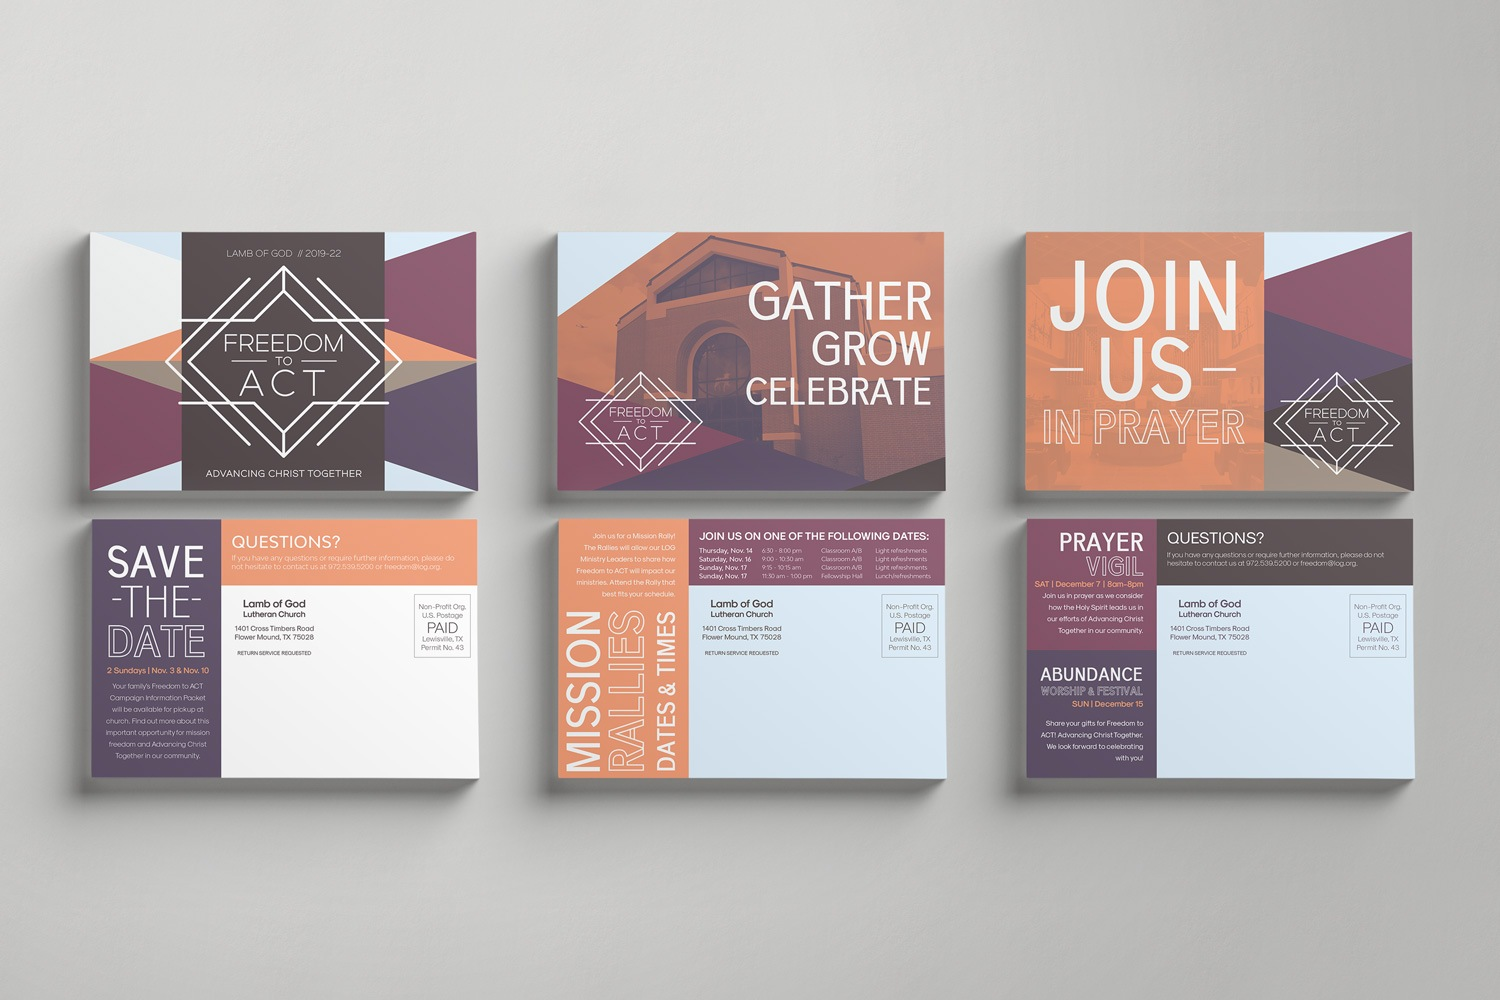 4 x 6 in. Standard Postcard Mailers for Church Capital Campaigns by Abstract Union in Lincoln, NE